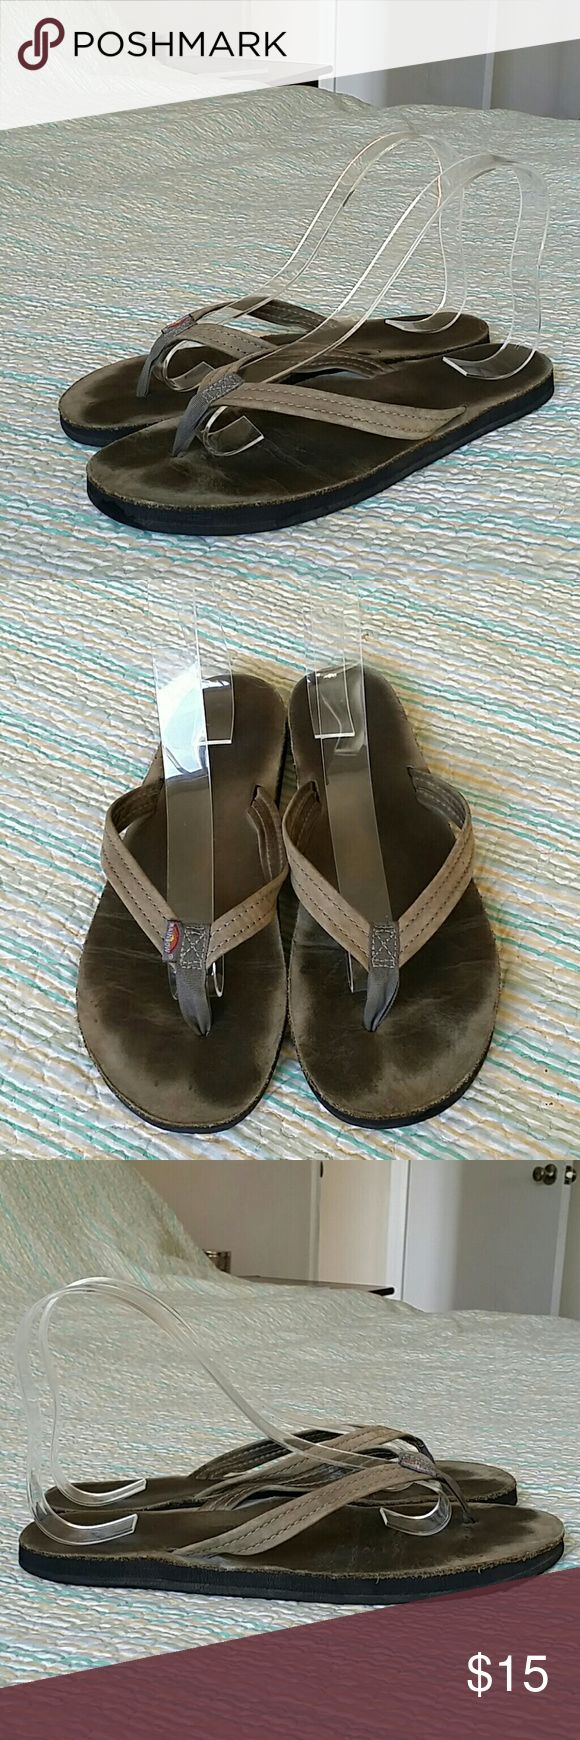 """Rainbow Army Olive Green Leather Thong Flip Flops Rainbow Army Olive Green Leather Thong Flip Flops Women's Size M 6.5-7.5 (10"""") Rainbow Shoes Sandals"""